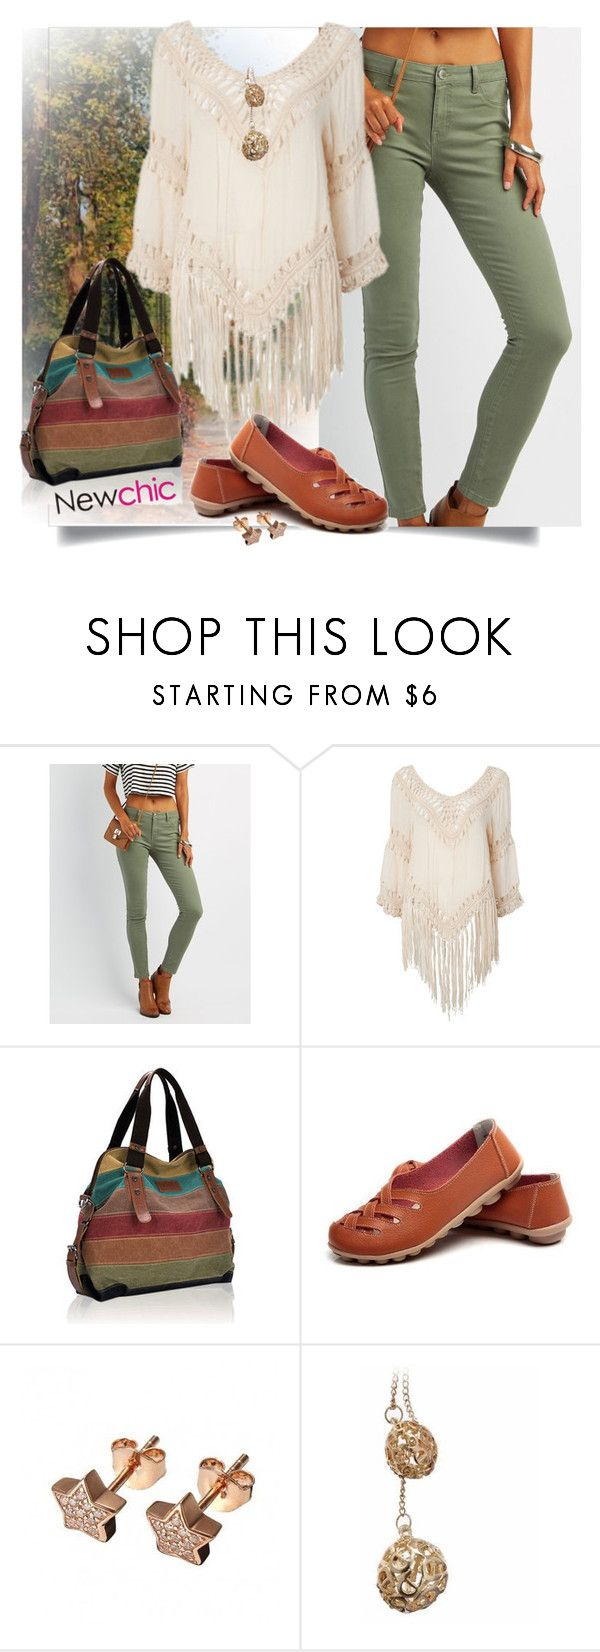 """""""#newchic"""" by vilmamartini ❤ liked on Polyvore featuring Charlotte Russe, chic, New and newchic"""